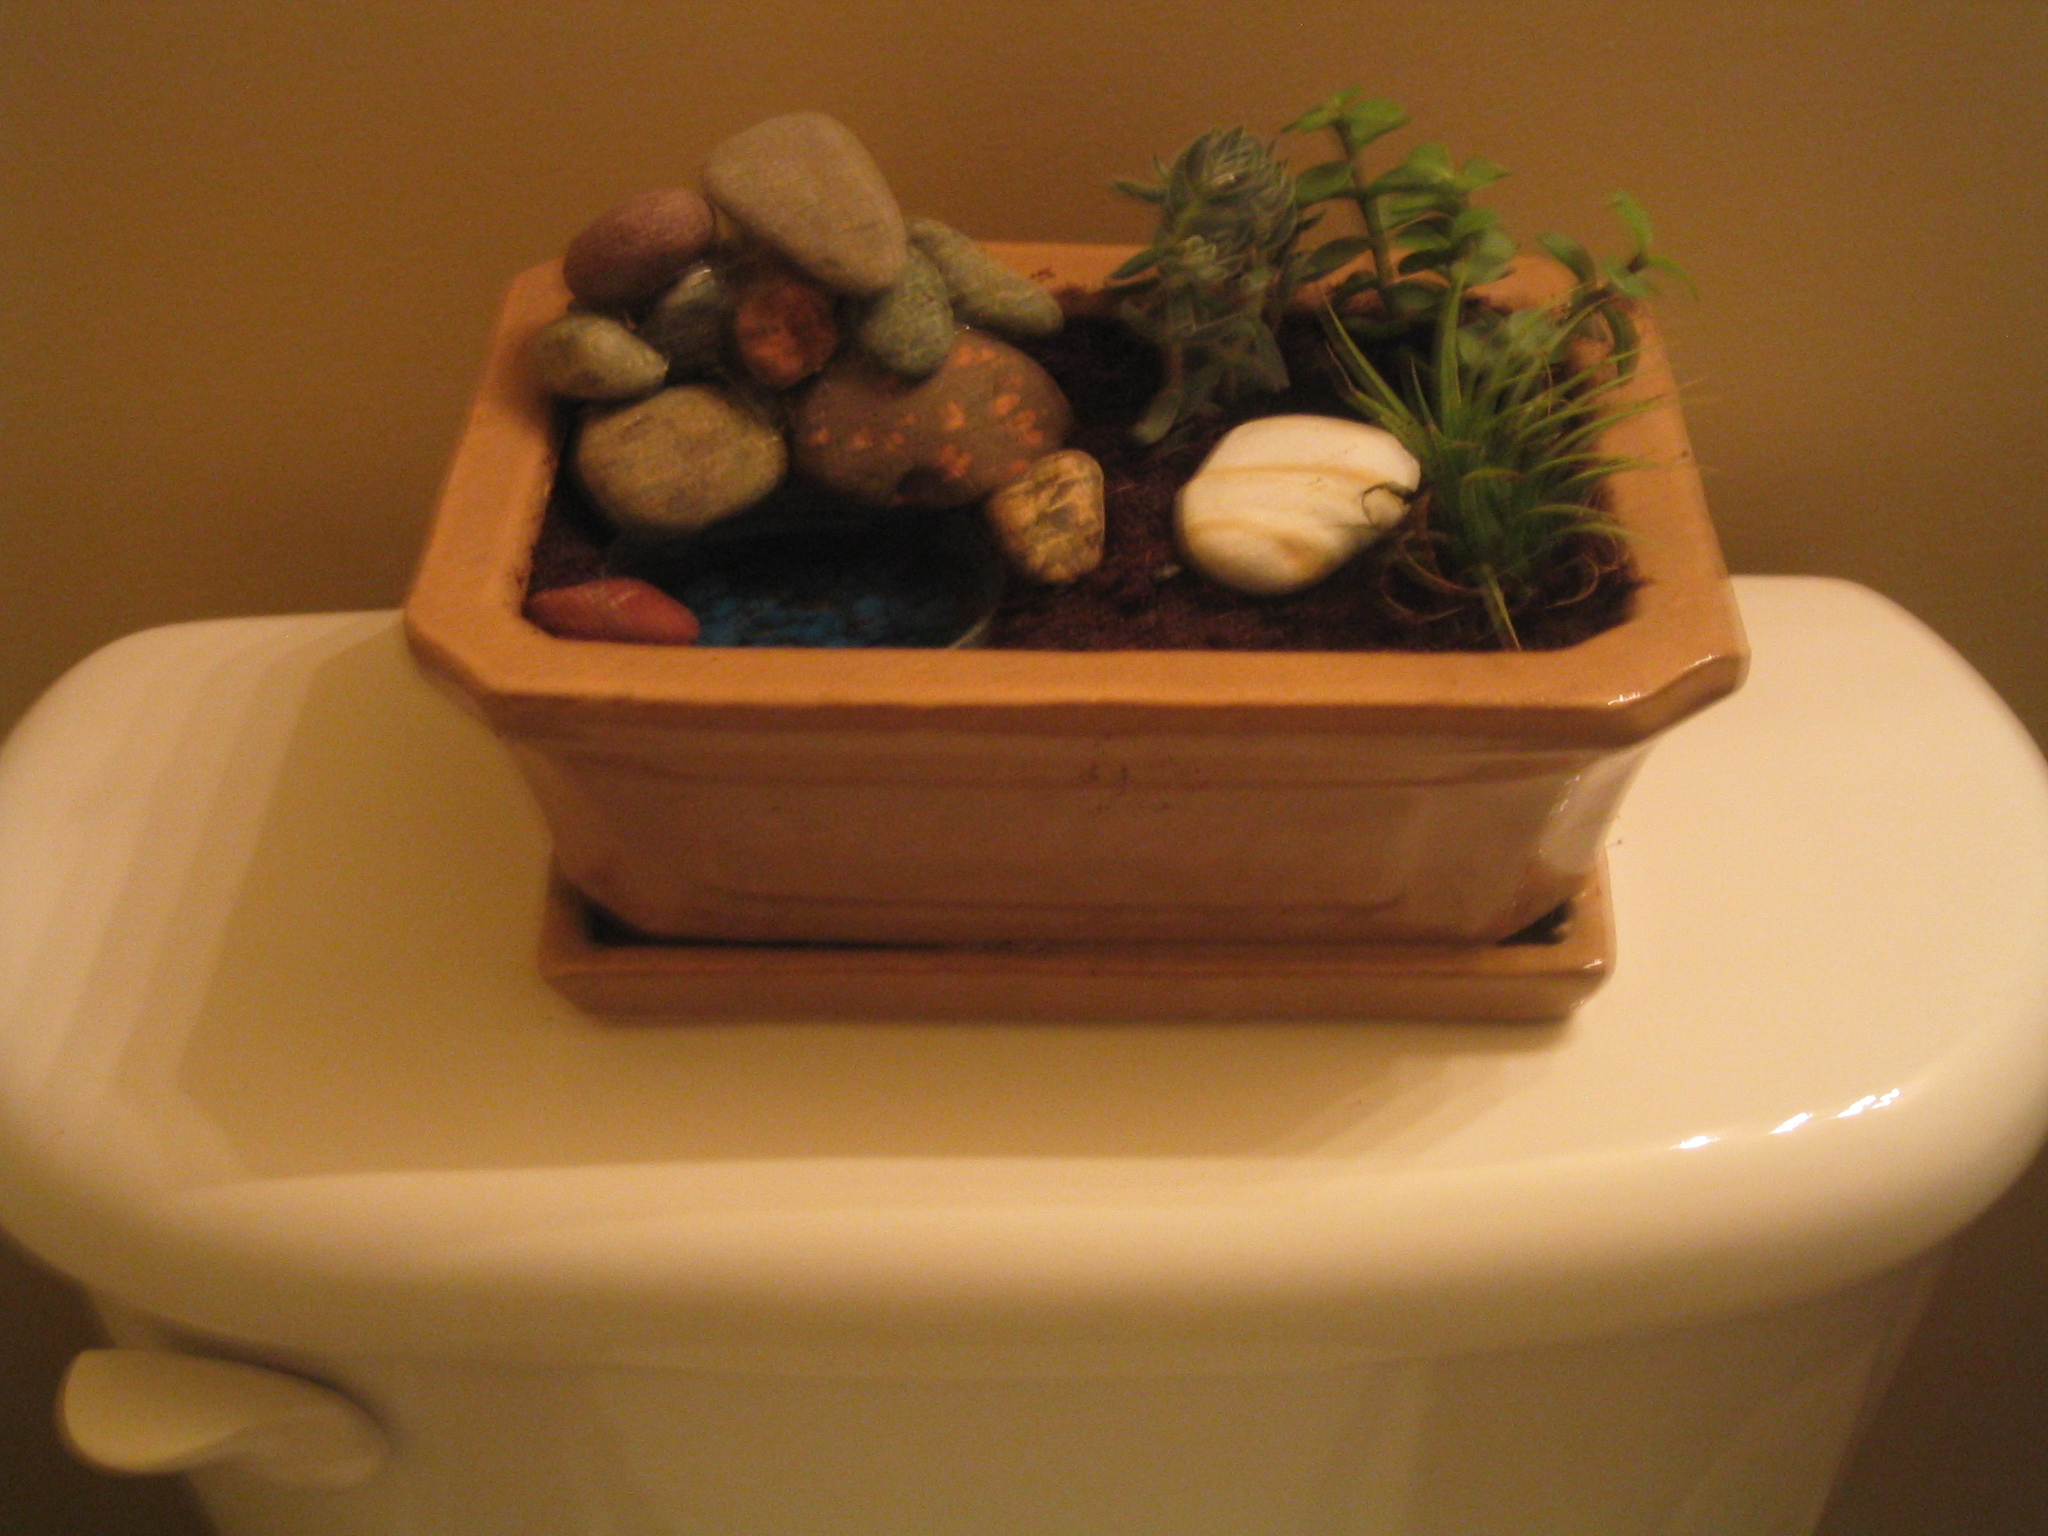 Toilet Powered Deodorant Zen Garden